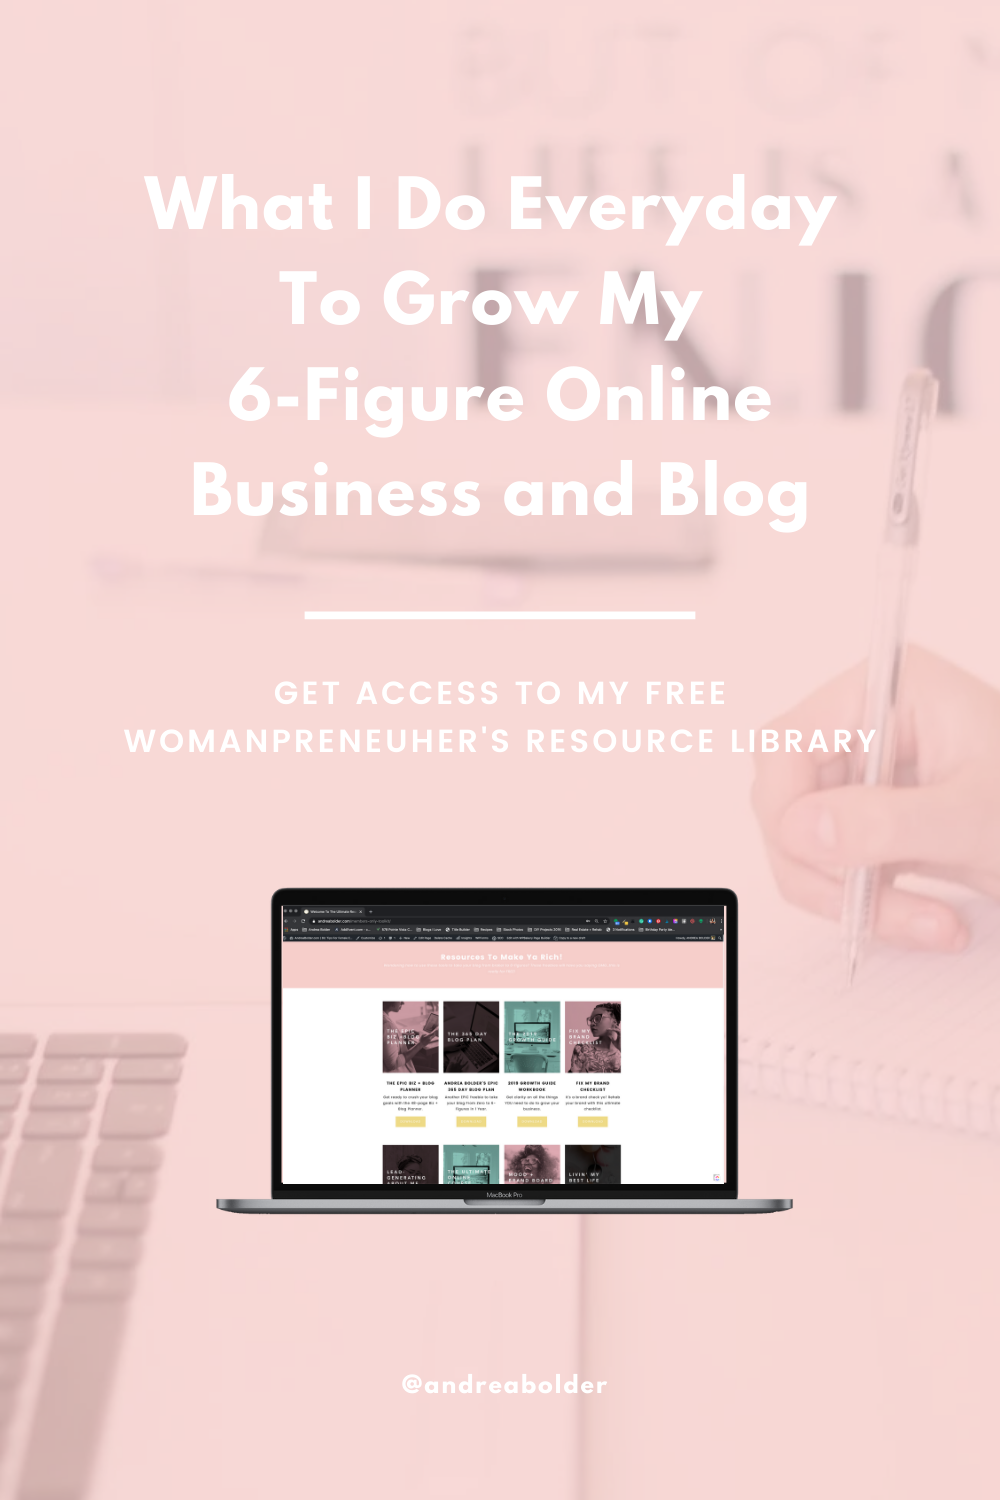 What I Do Everyday To Grow My 6-Figure Online Business And Blog